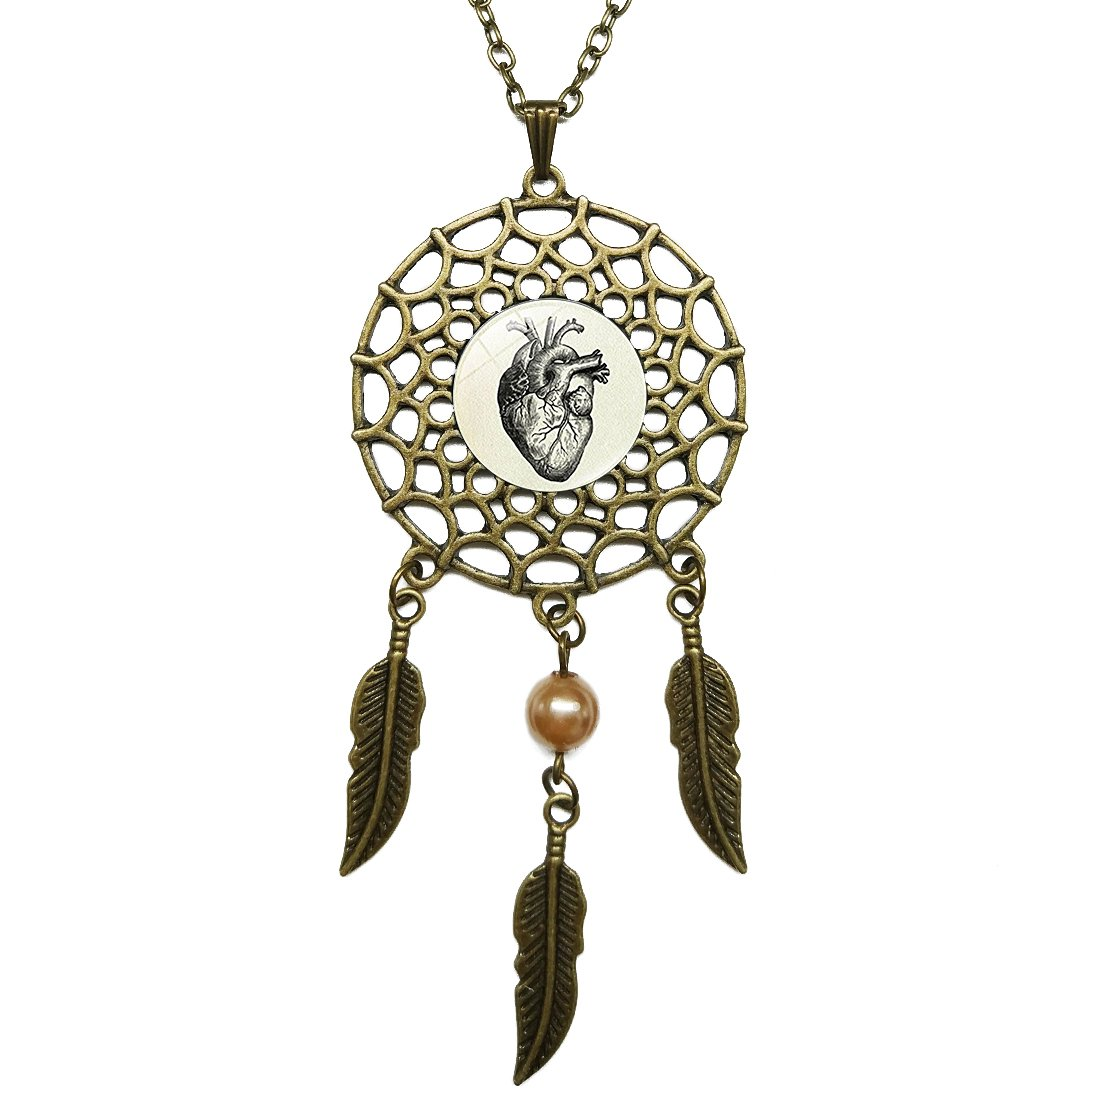 Dreamcatcher Pendant Heart Anatomical Drawing Bronze Chain Long Necklace Jewelry Dangling Feather Charms Glass Inlaid